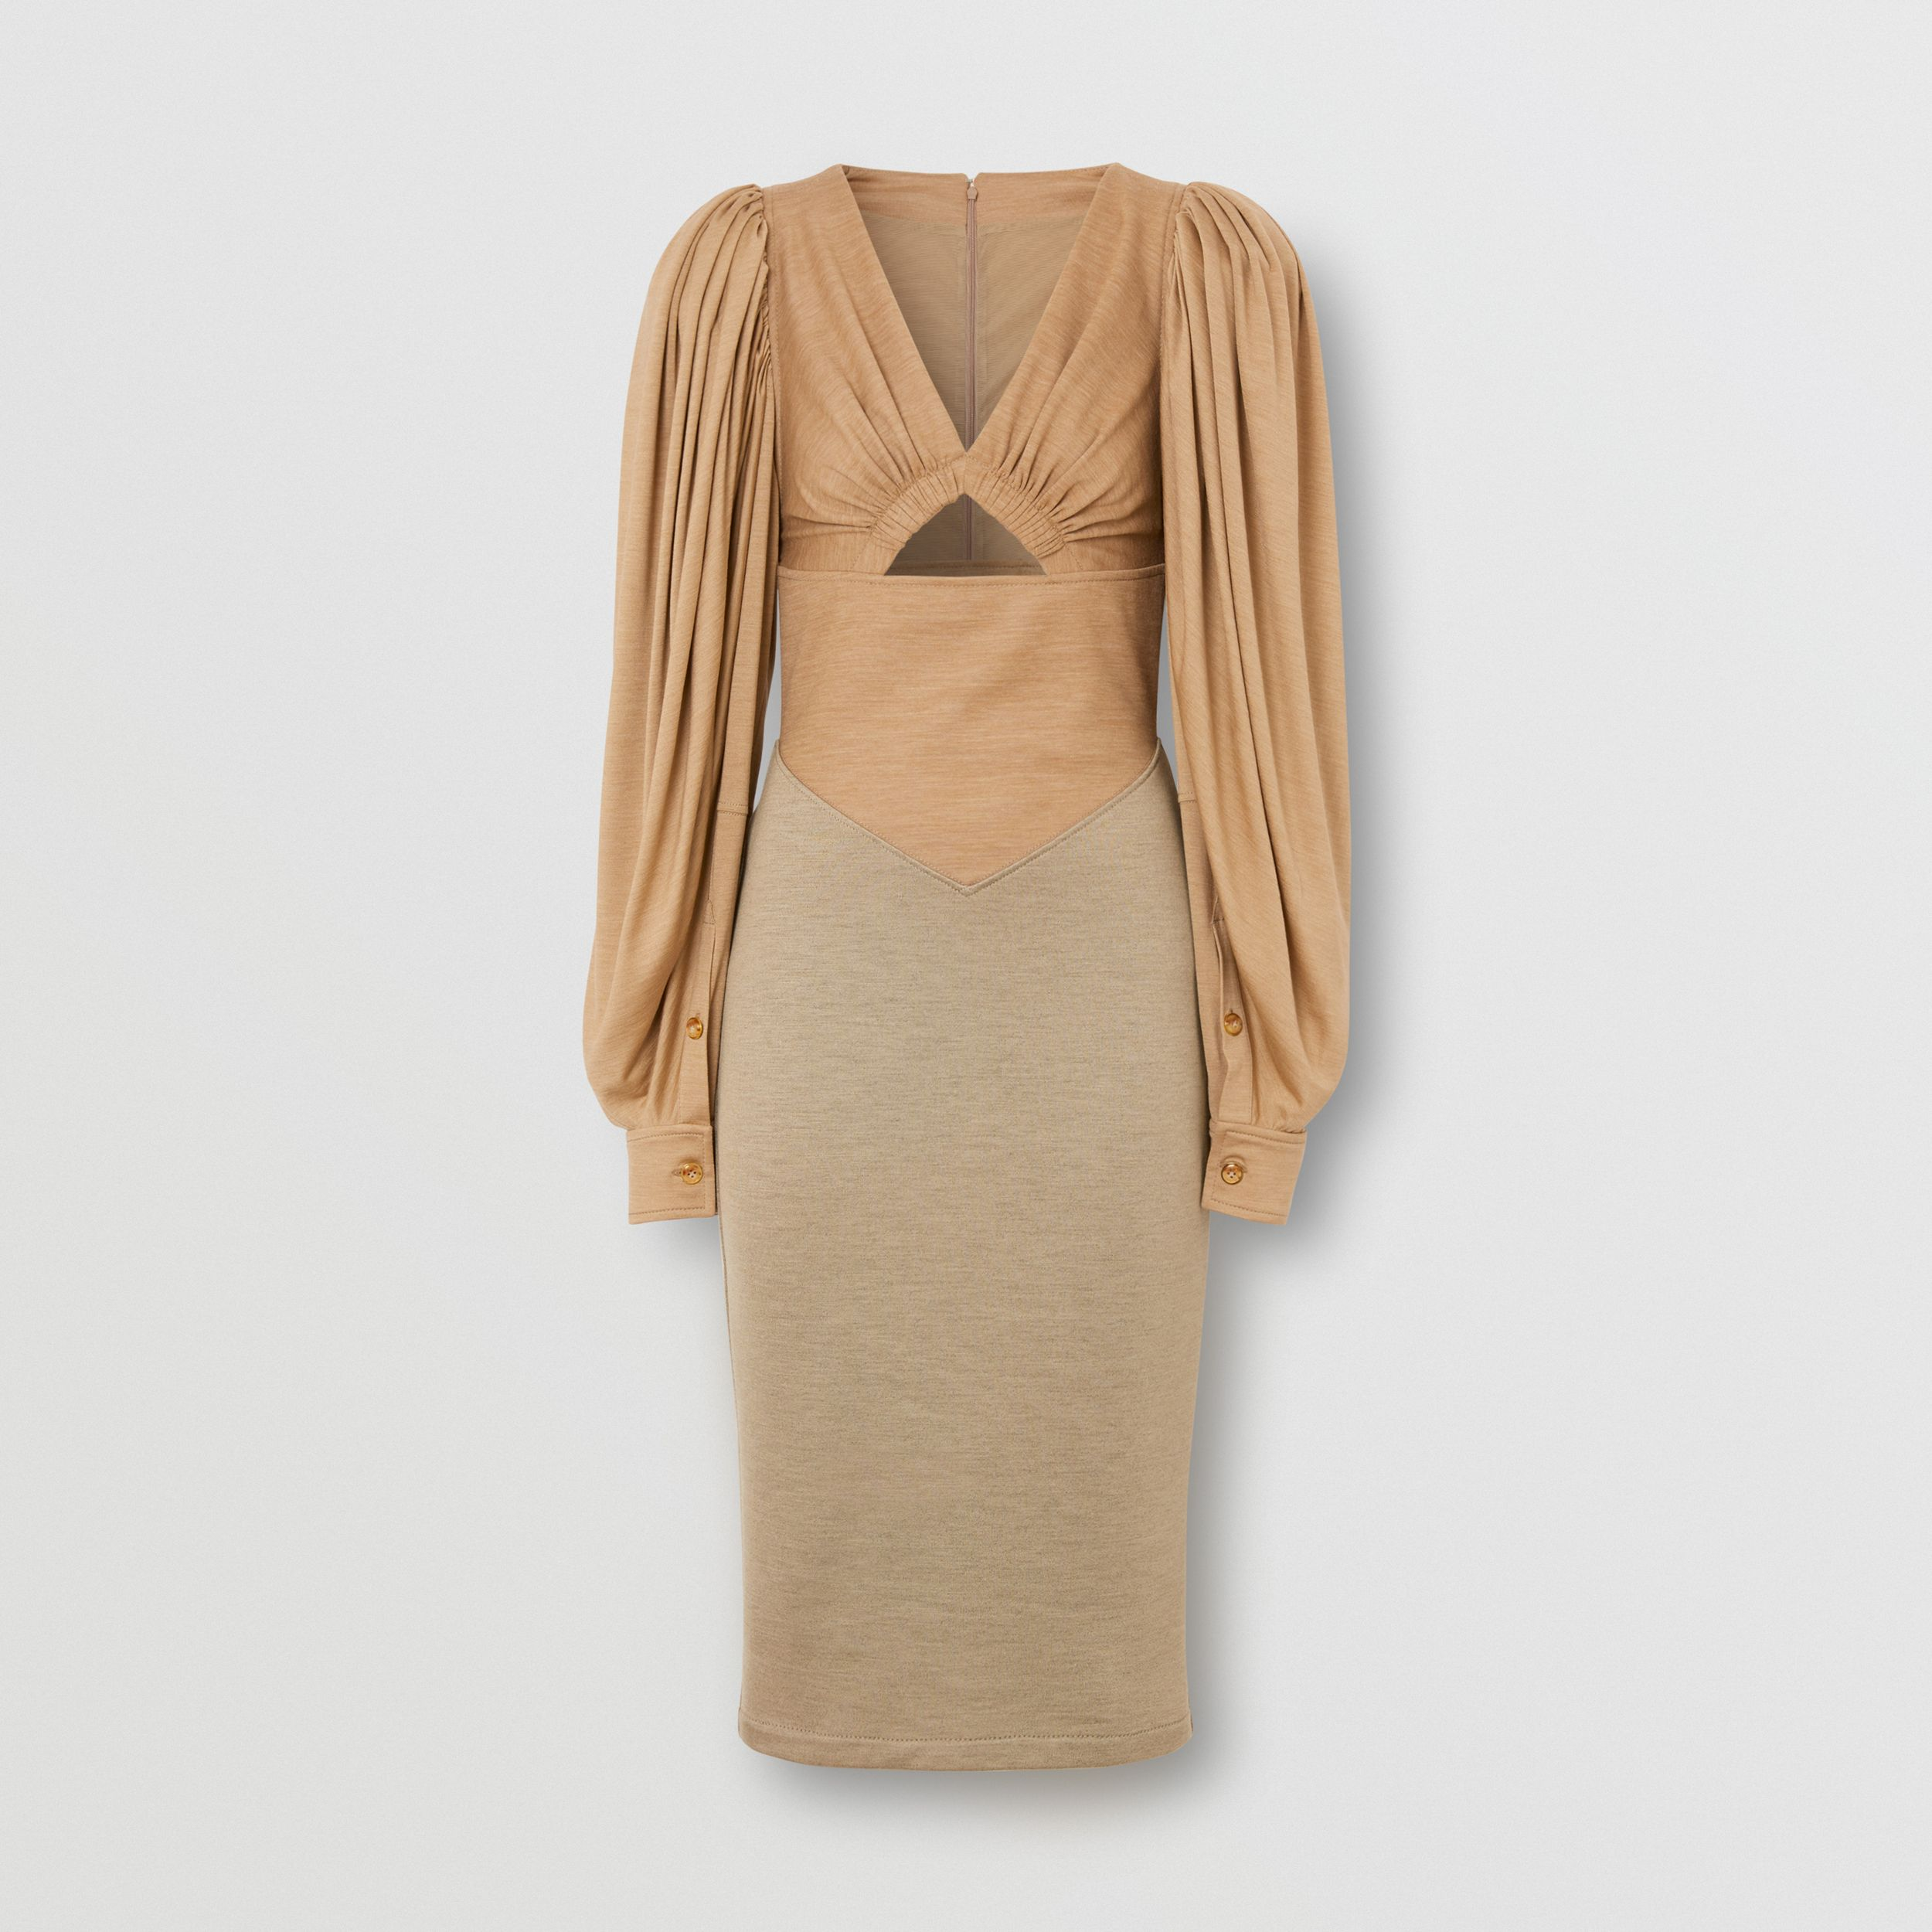 Panelled Wool Silk Jersey Dress in Pecan Melange - Women | Burberry - 3